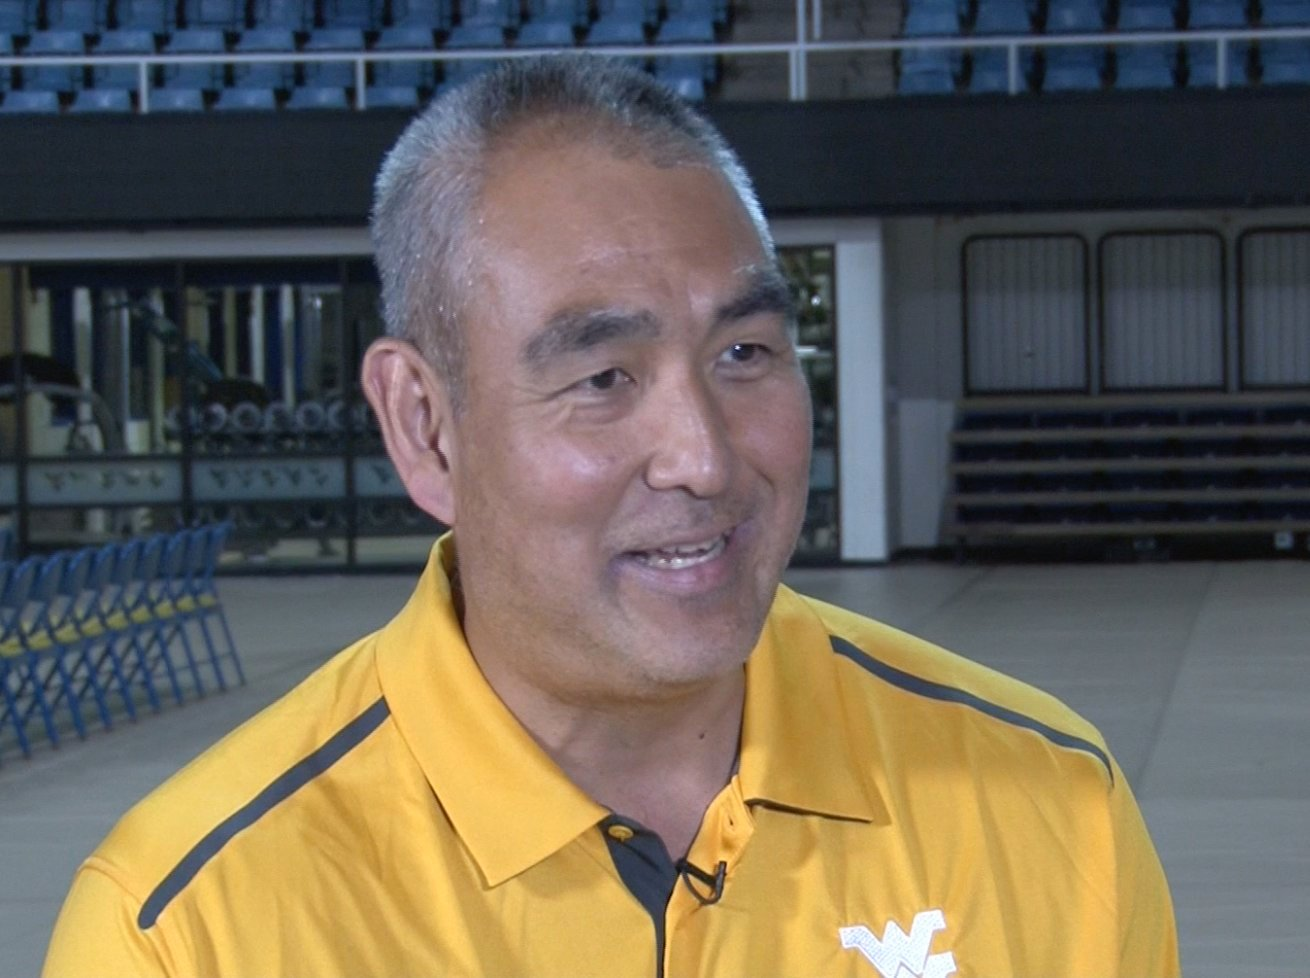 WVU Volleyball Coach Reed Sunahara sits down with The WVU Coaches Show.